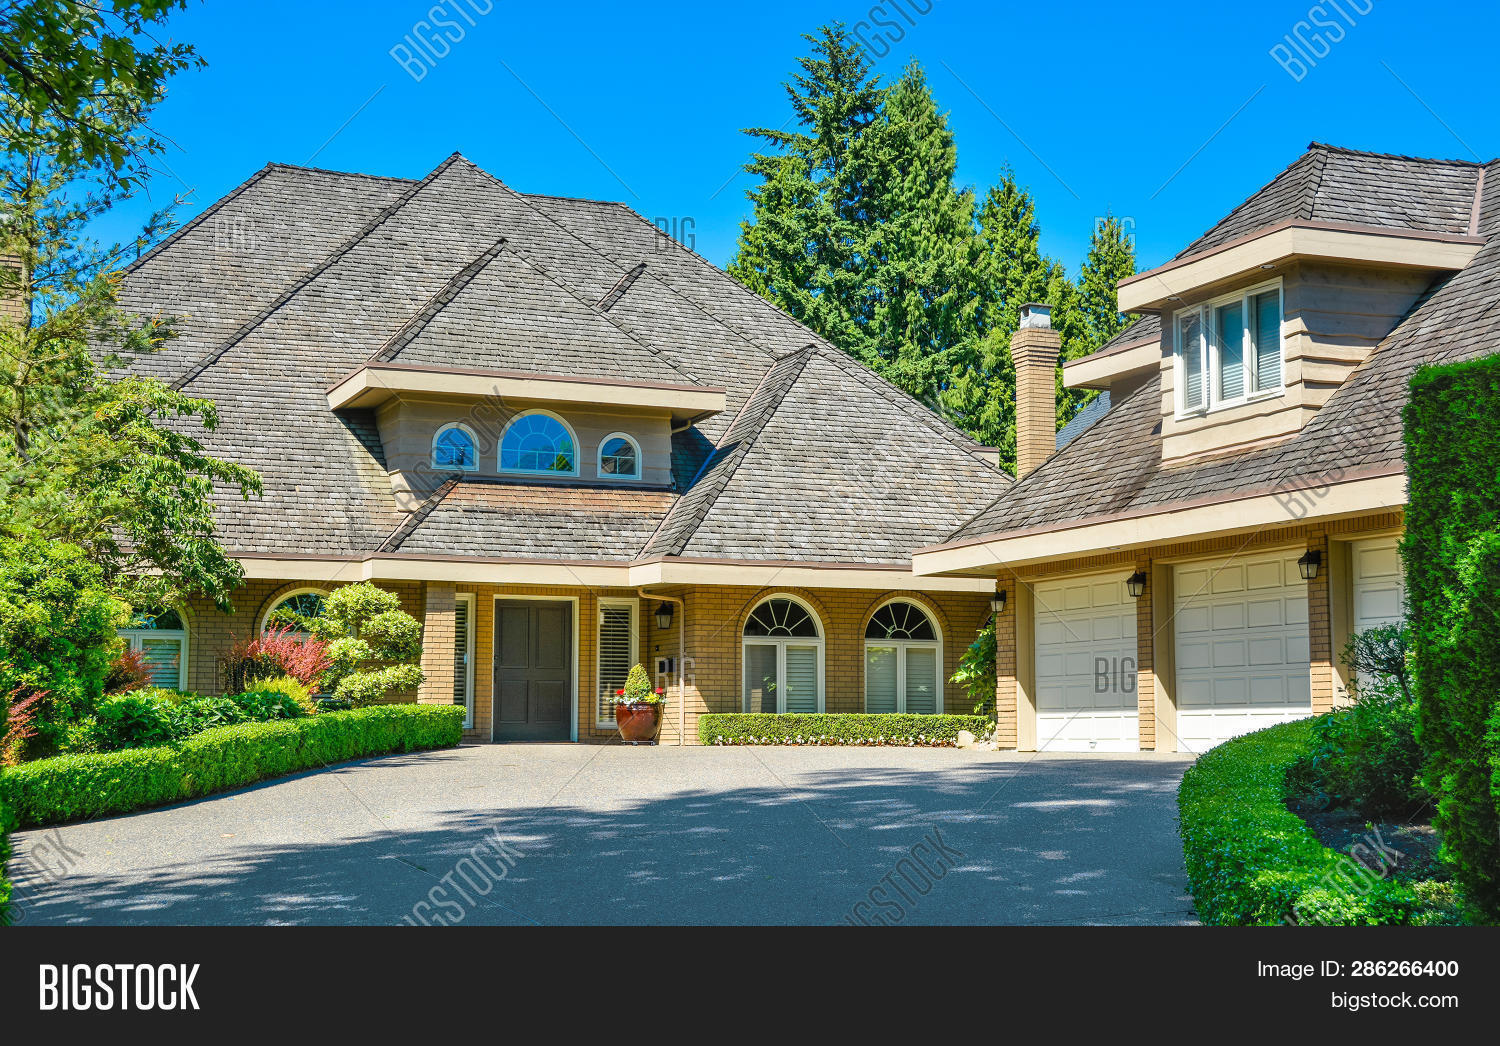 Residential House With Massive Roofs With Green Hedge At The Entrance On Blue Sky Background. Family